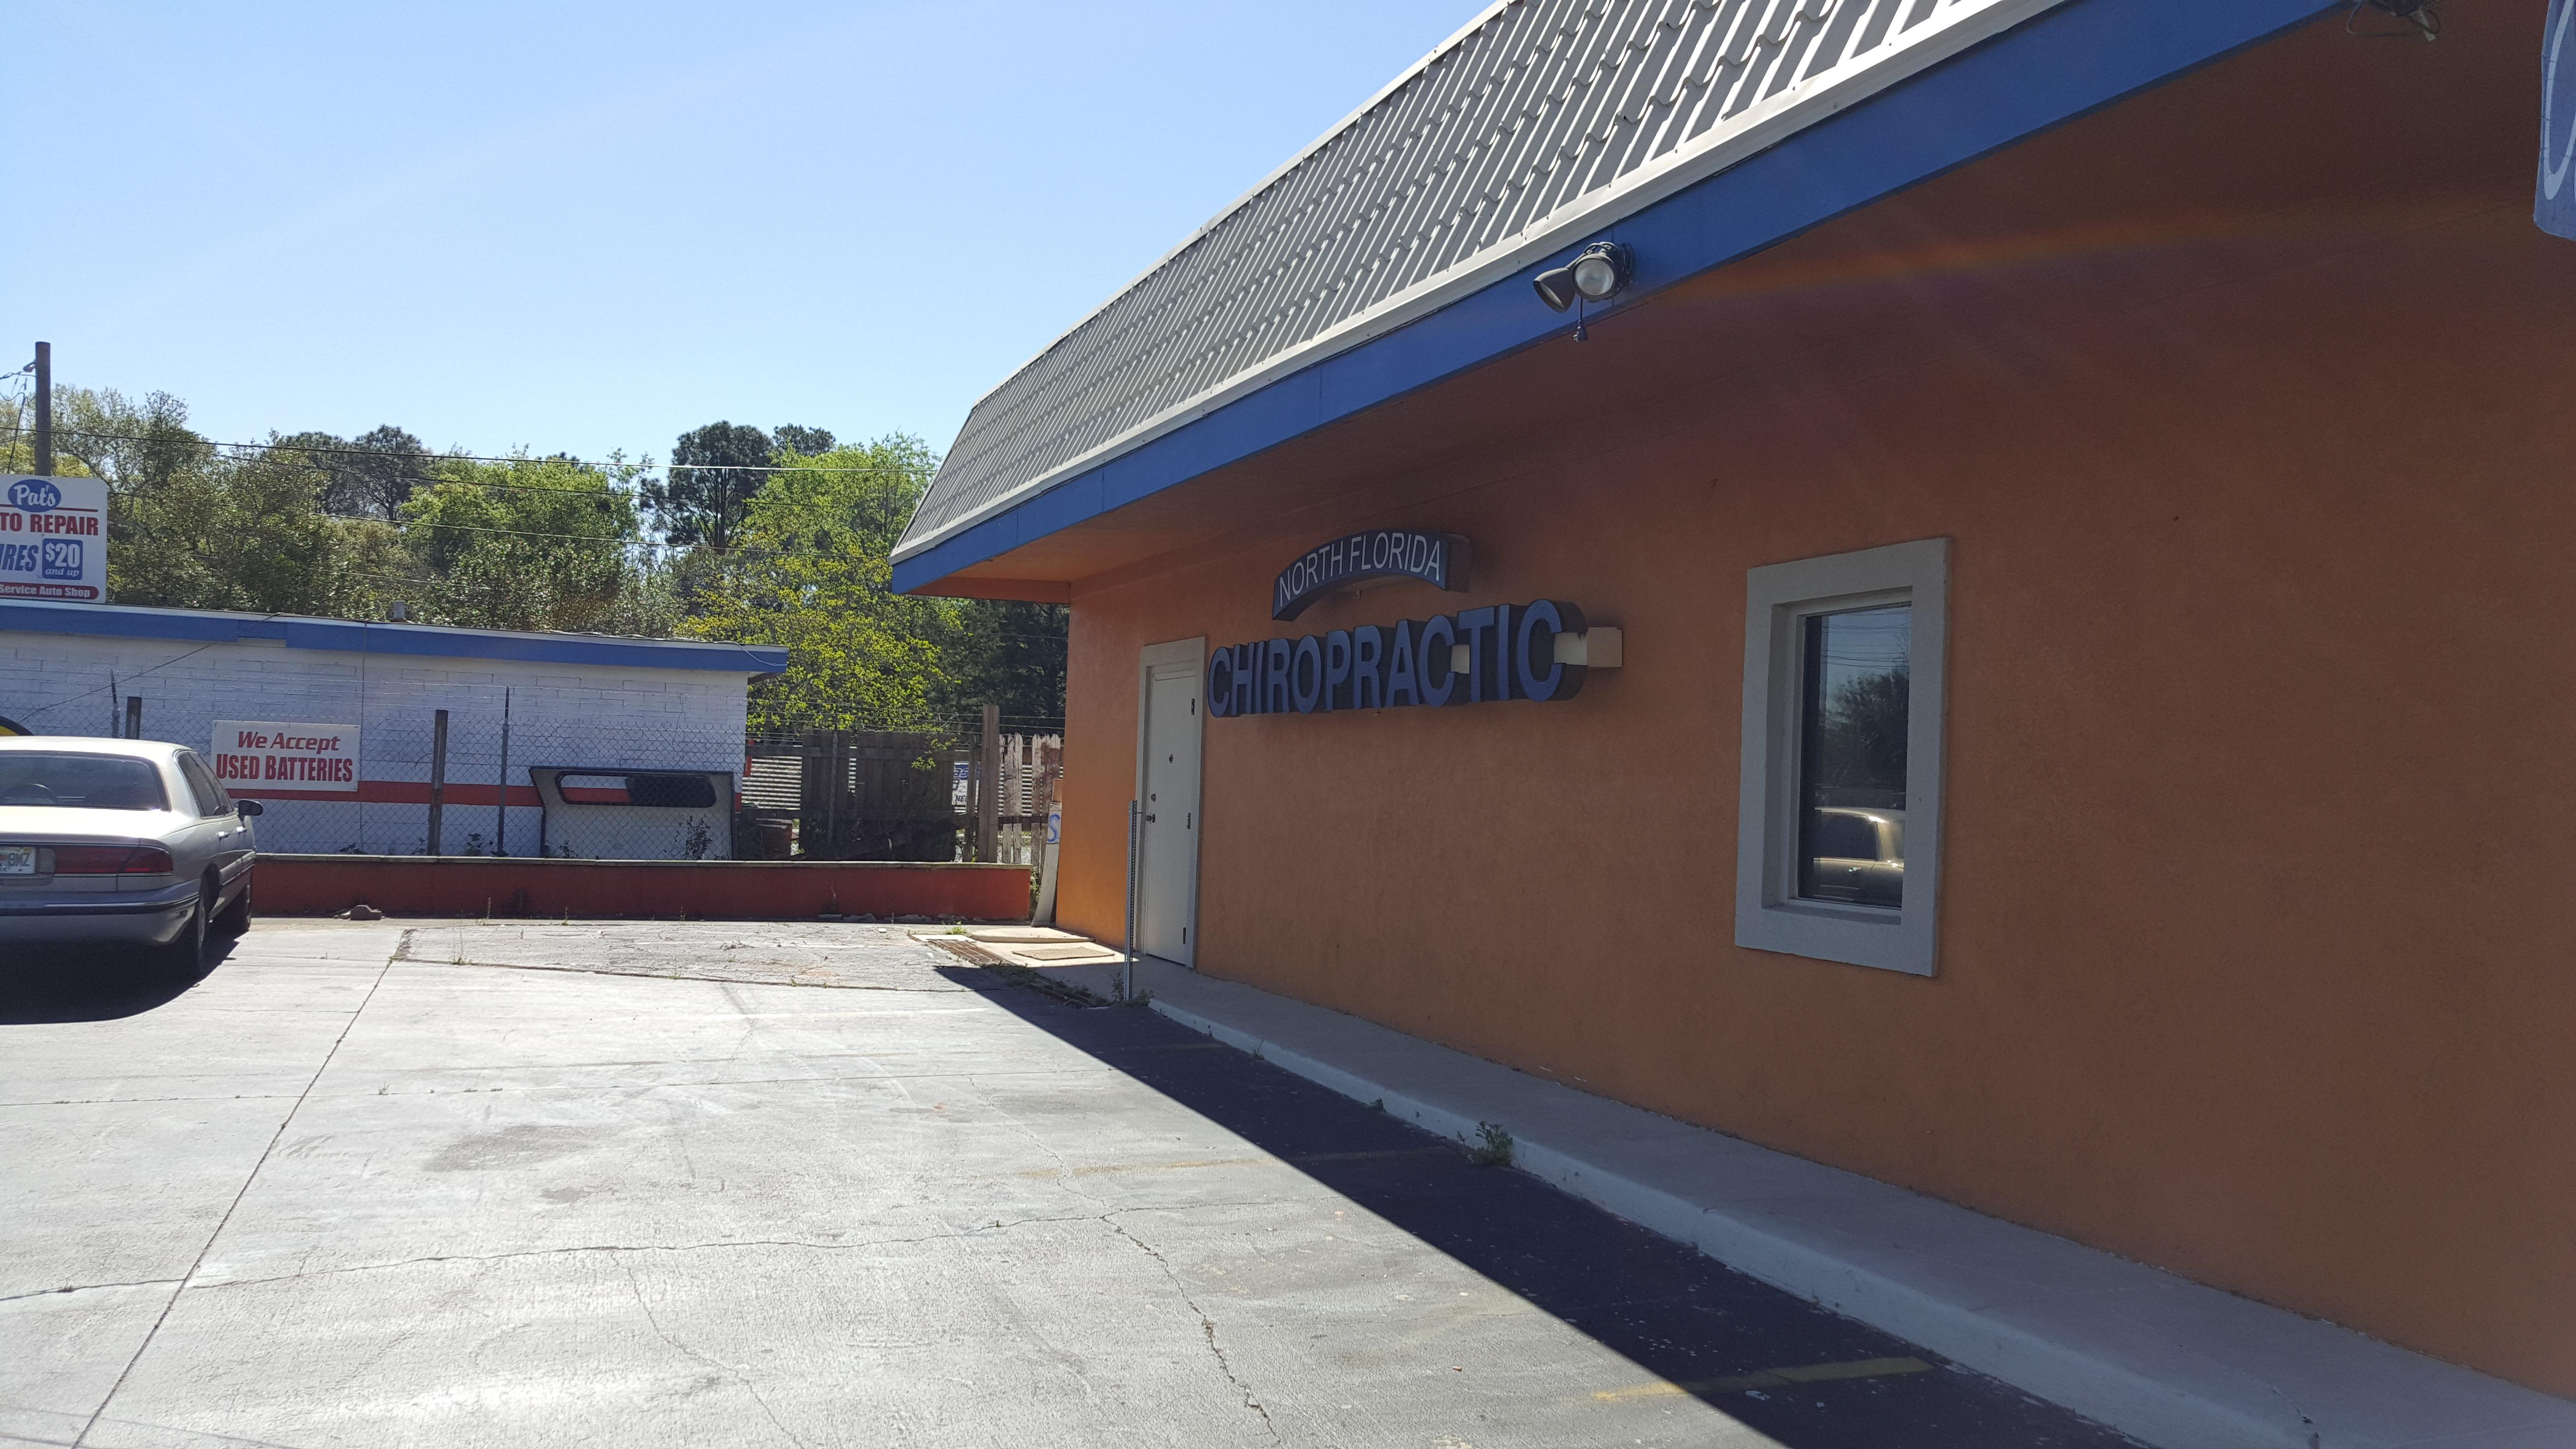 North Florida Chiropractic Physical Therapy image 0